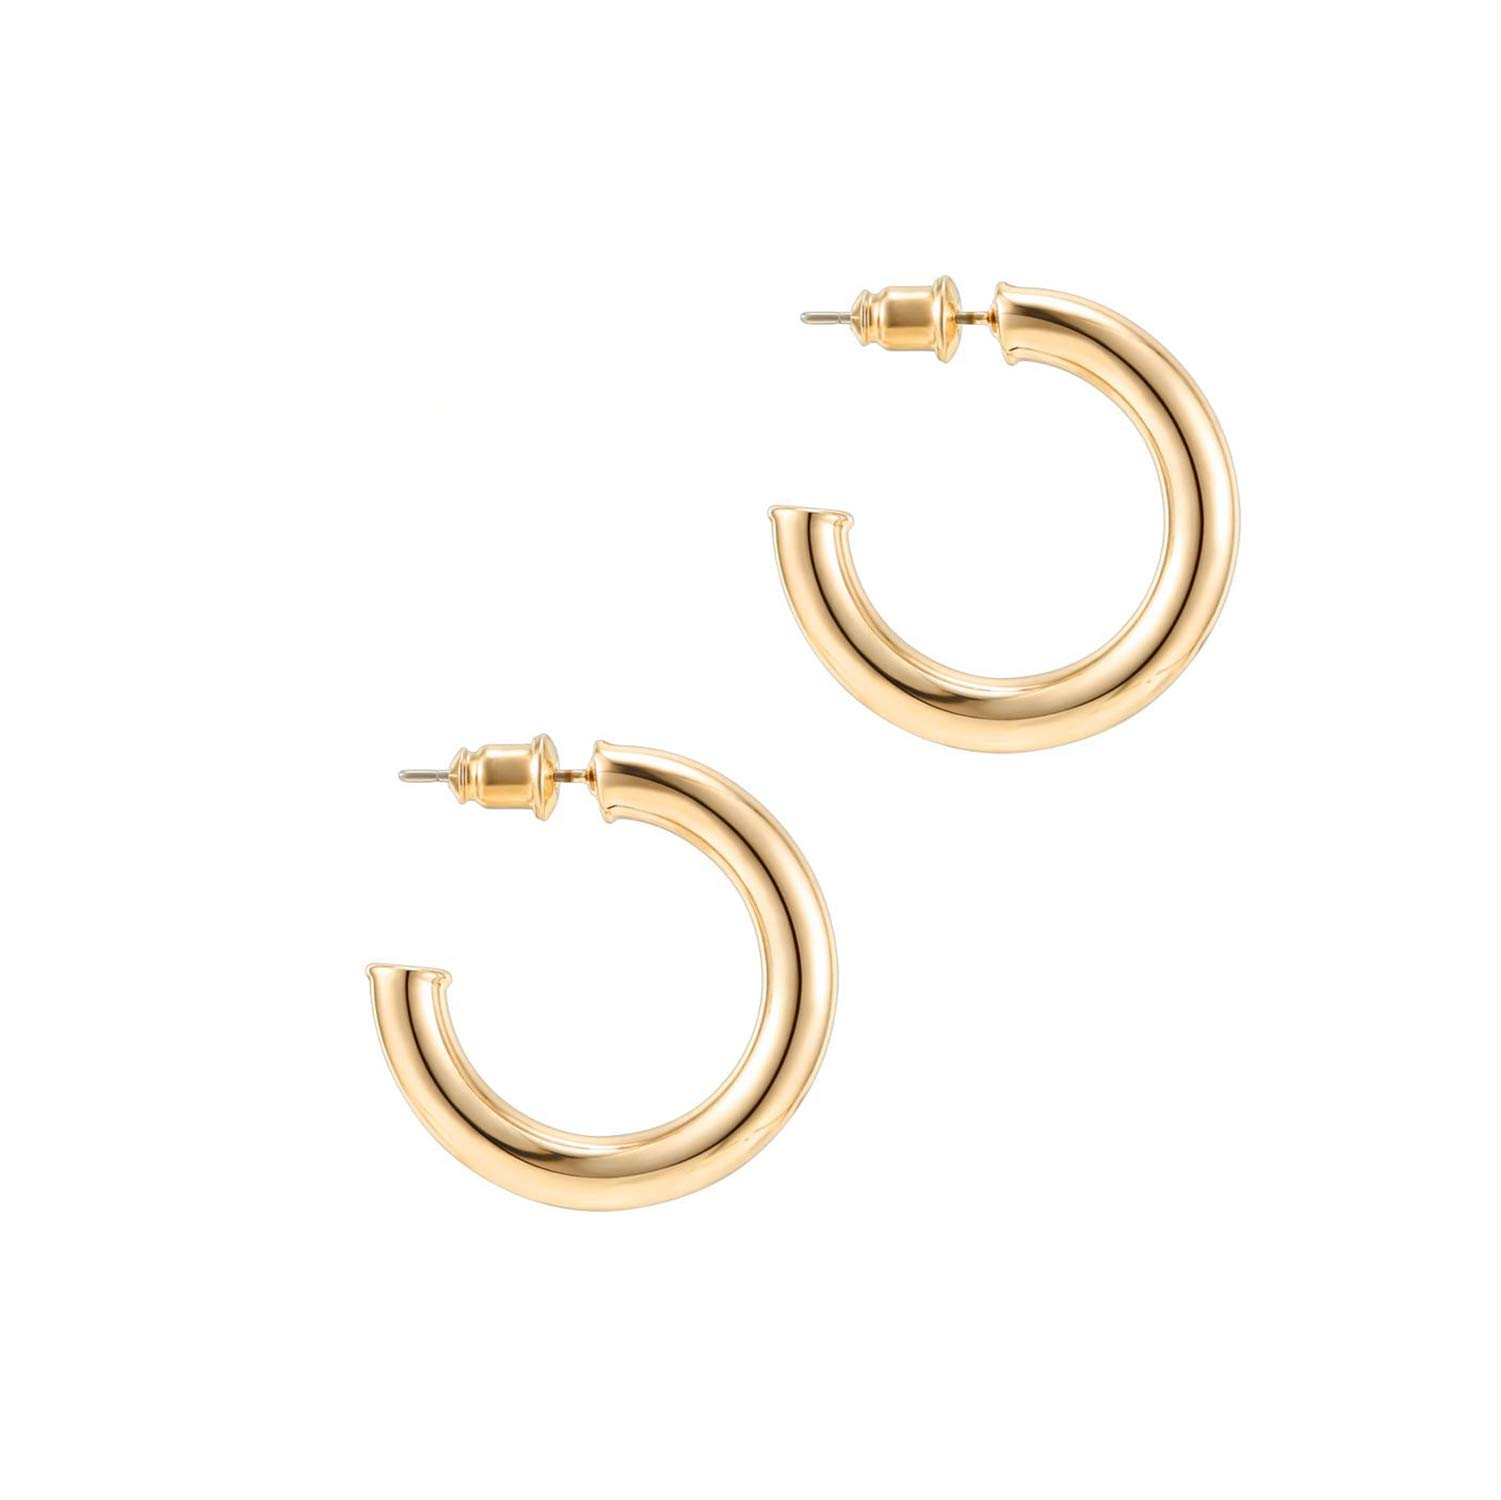 PAVOI 14K Yellow Gold Colored Lightweight Chunky Open Hoops | 30mm Yellow Gold Hoop Earrings for Women by PAVOI